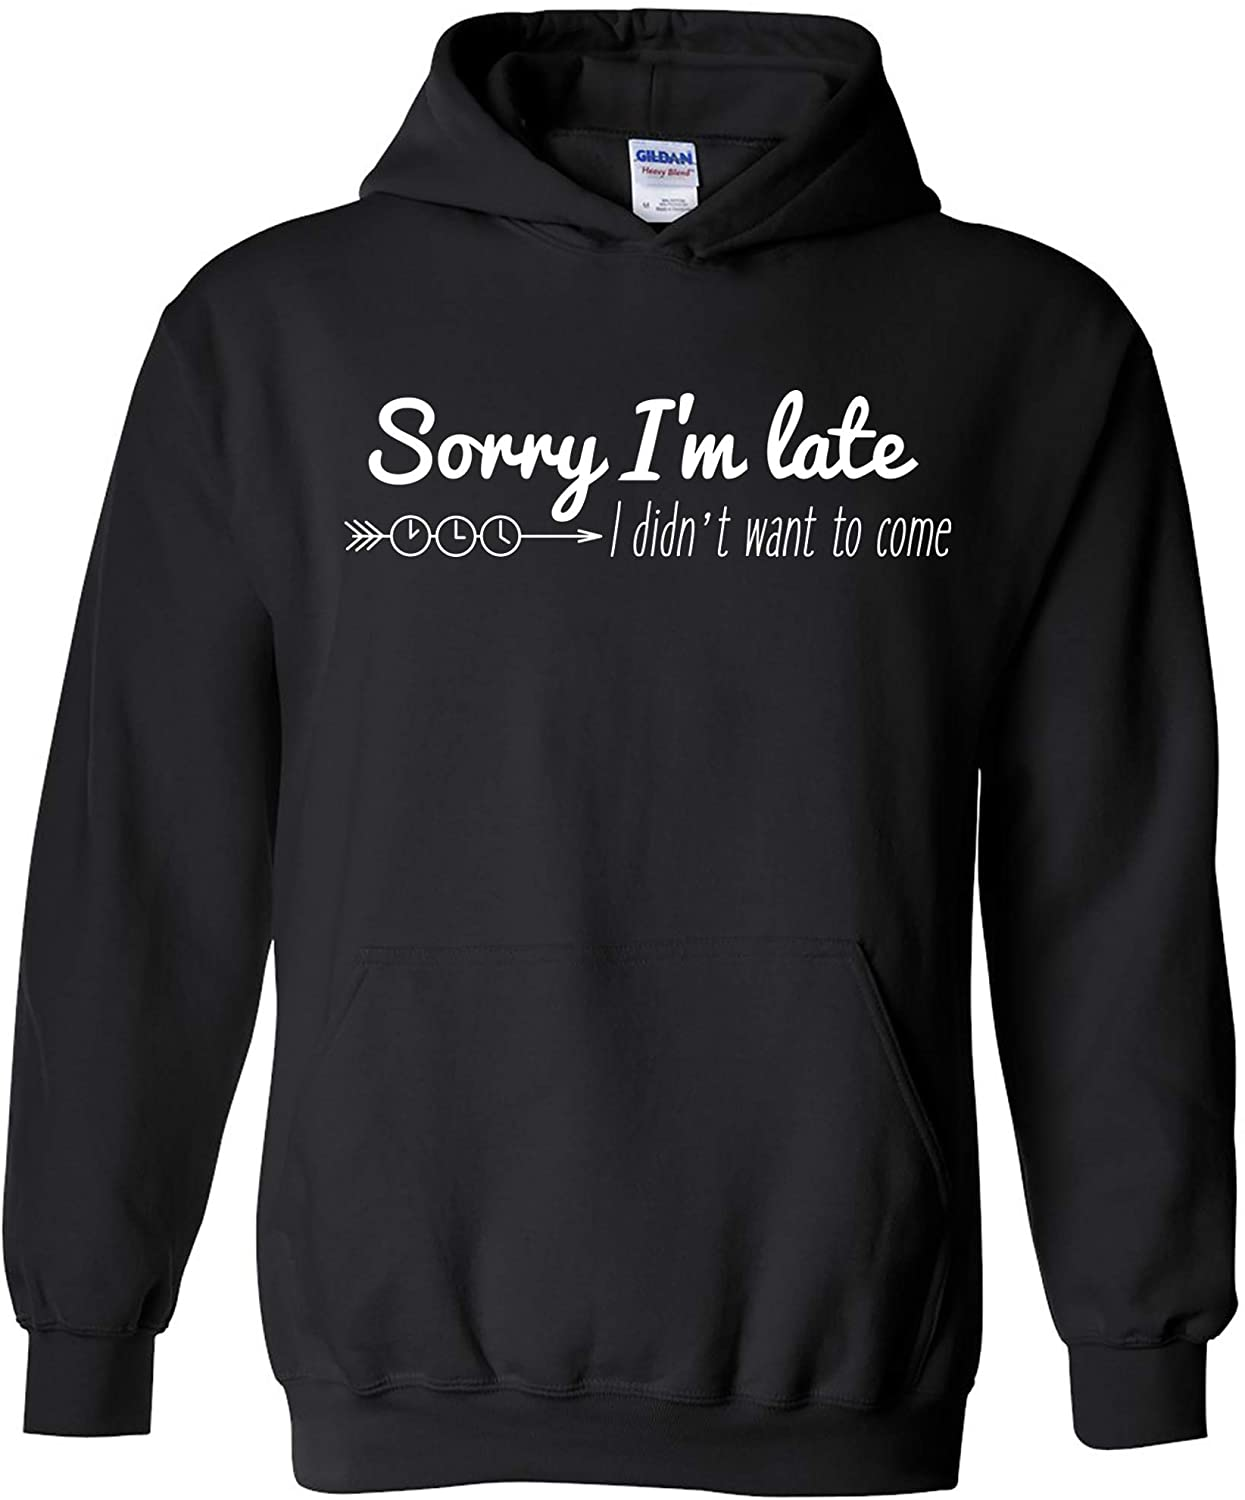 UGP Campus Apparel Sorry I'm Late I Didn't Want to Come - Funny Fashionably Late Graphic Hoodie